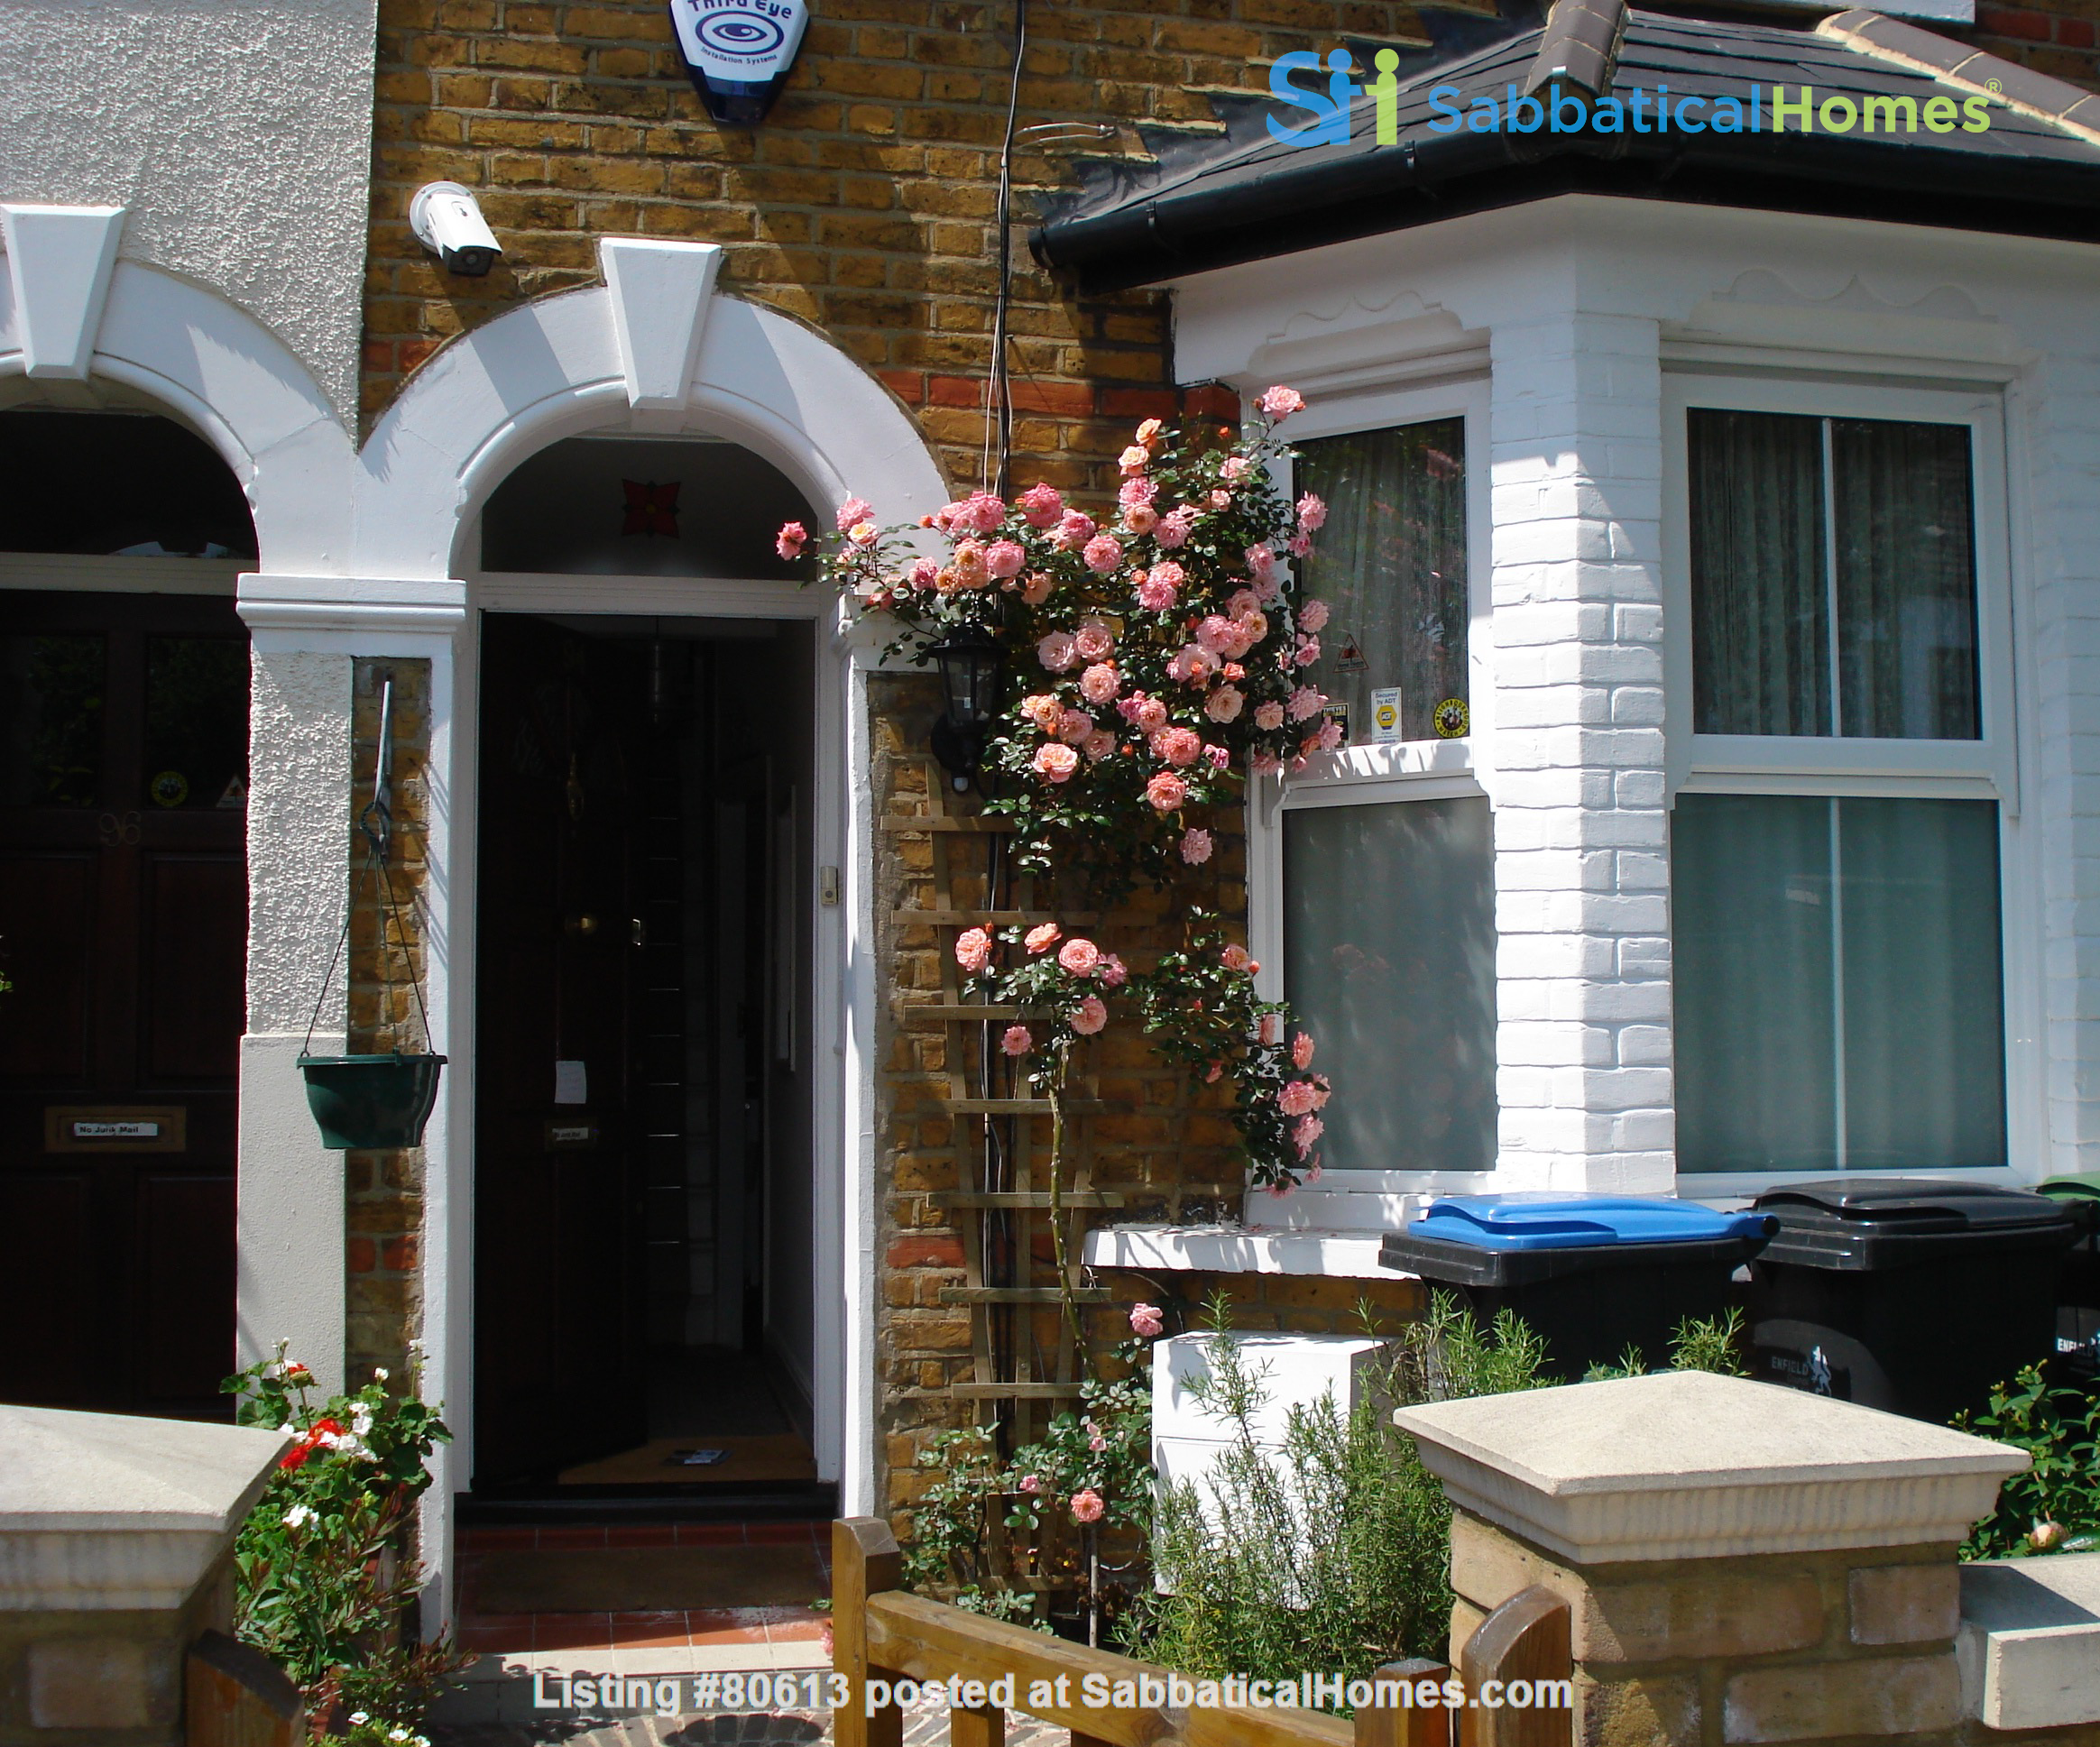 2 Rooms available -Bounds Green Tube N11 (Piccadilly Line) - Shared Kitchen Home Rental in Greater London, England, United Kingdom 1